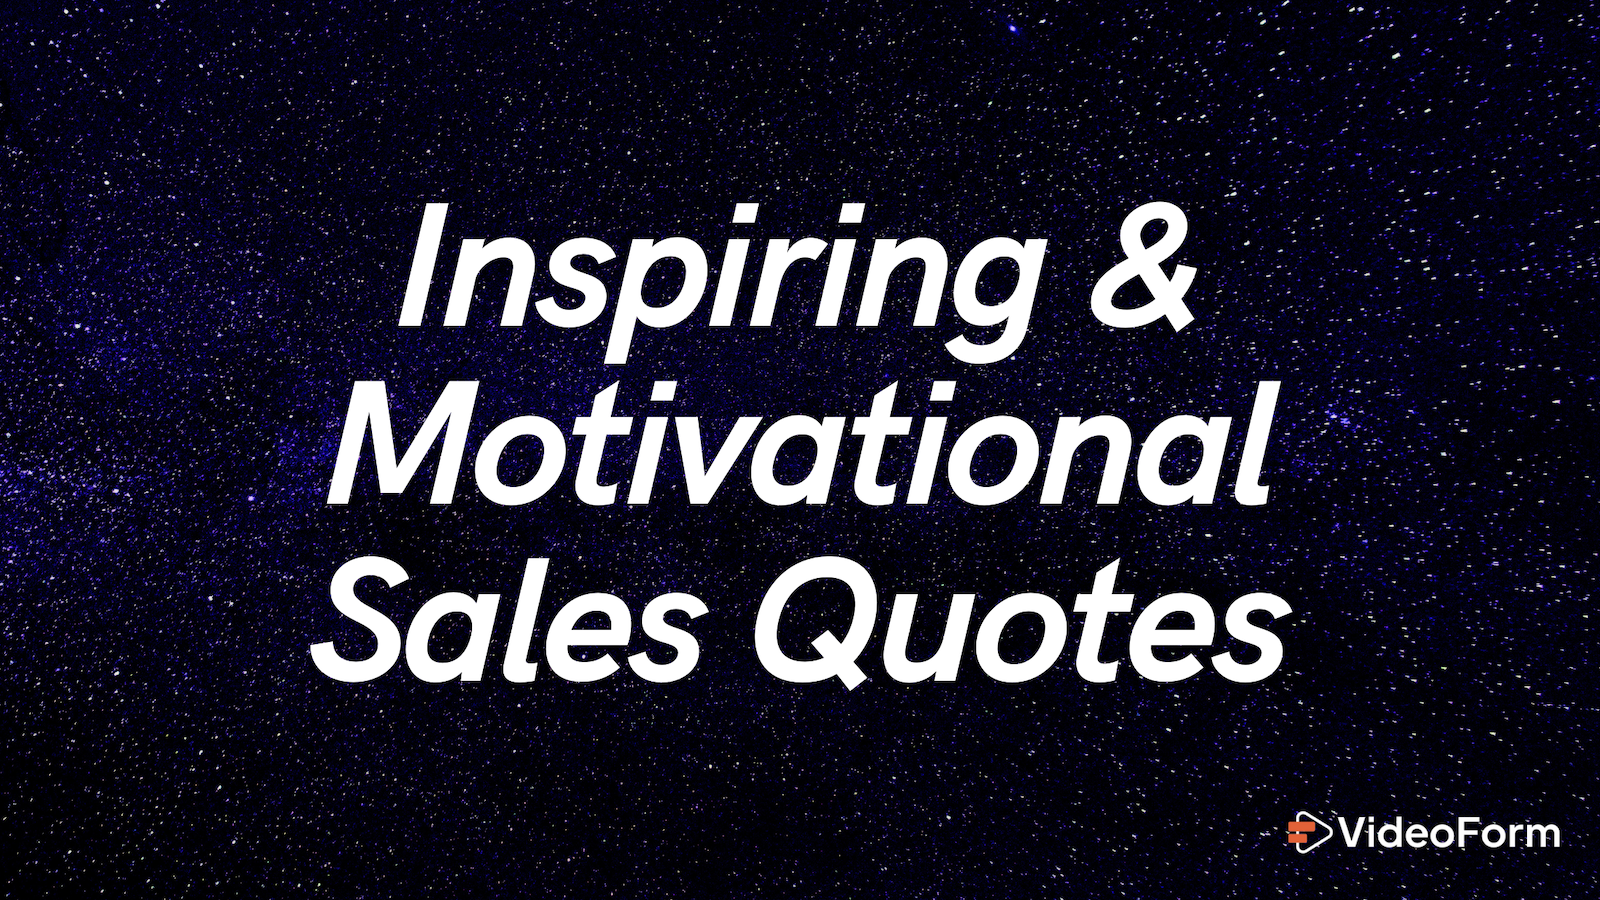 81 Motivational Sales Quotes to Crush 2021 Goals